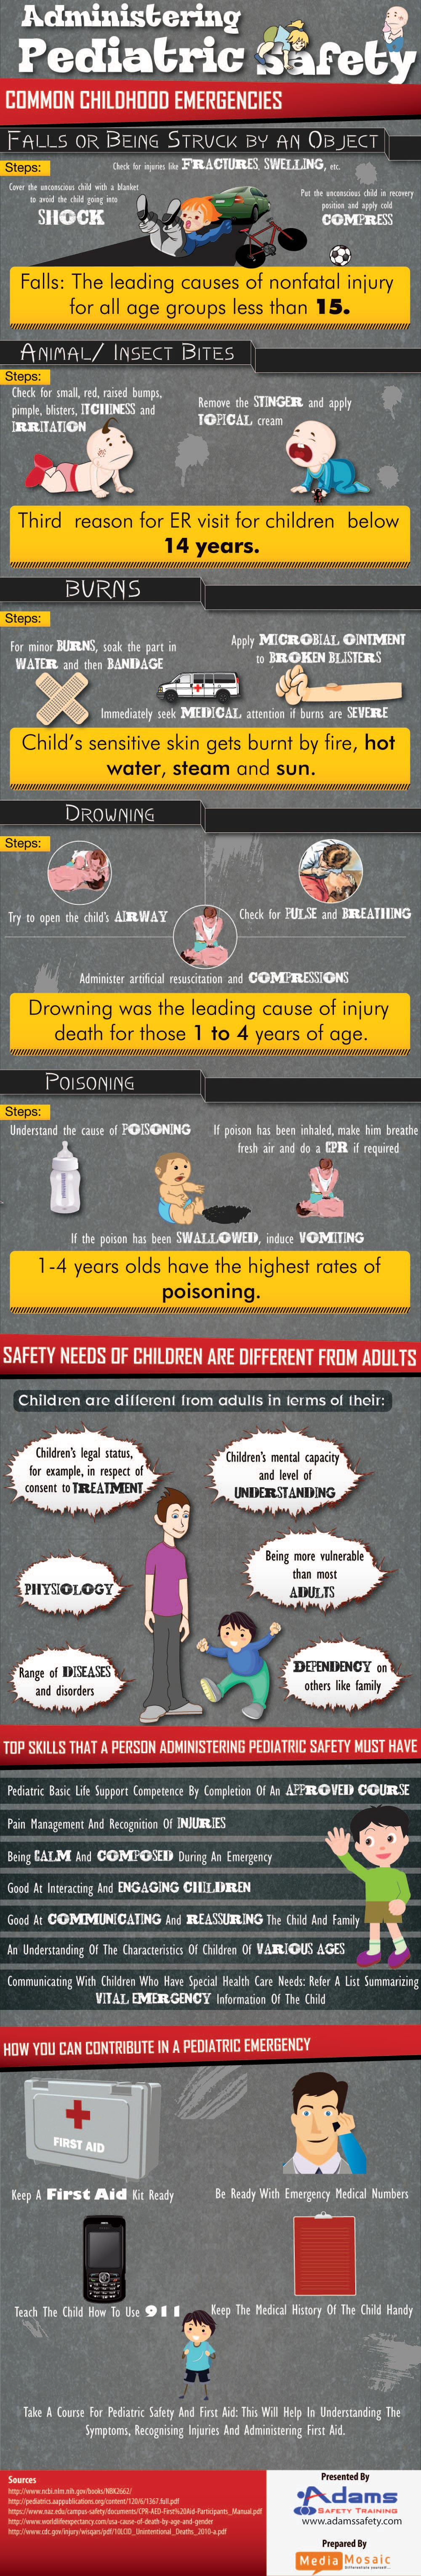 Post image for Administering Pediatric Safety [Infographic]